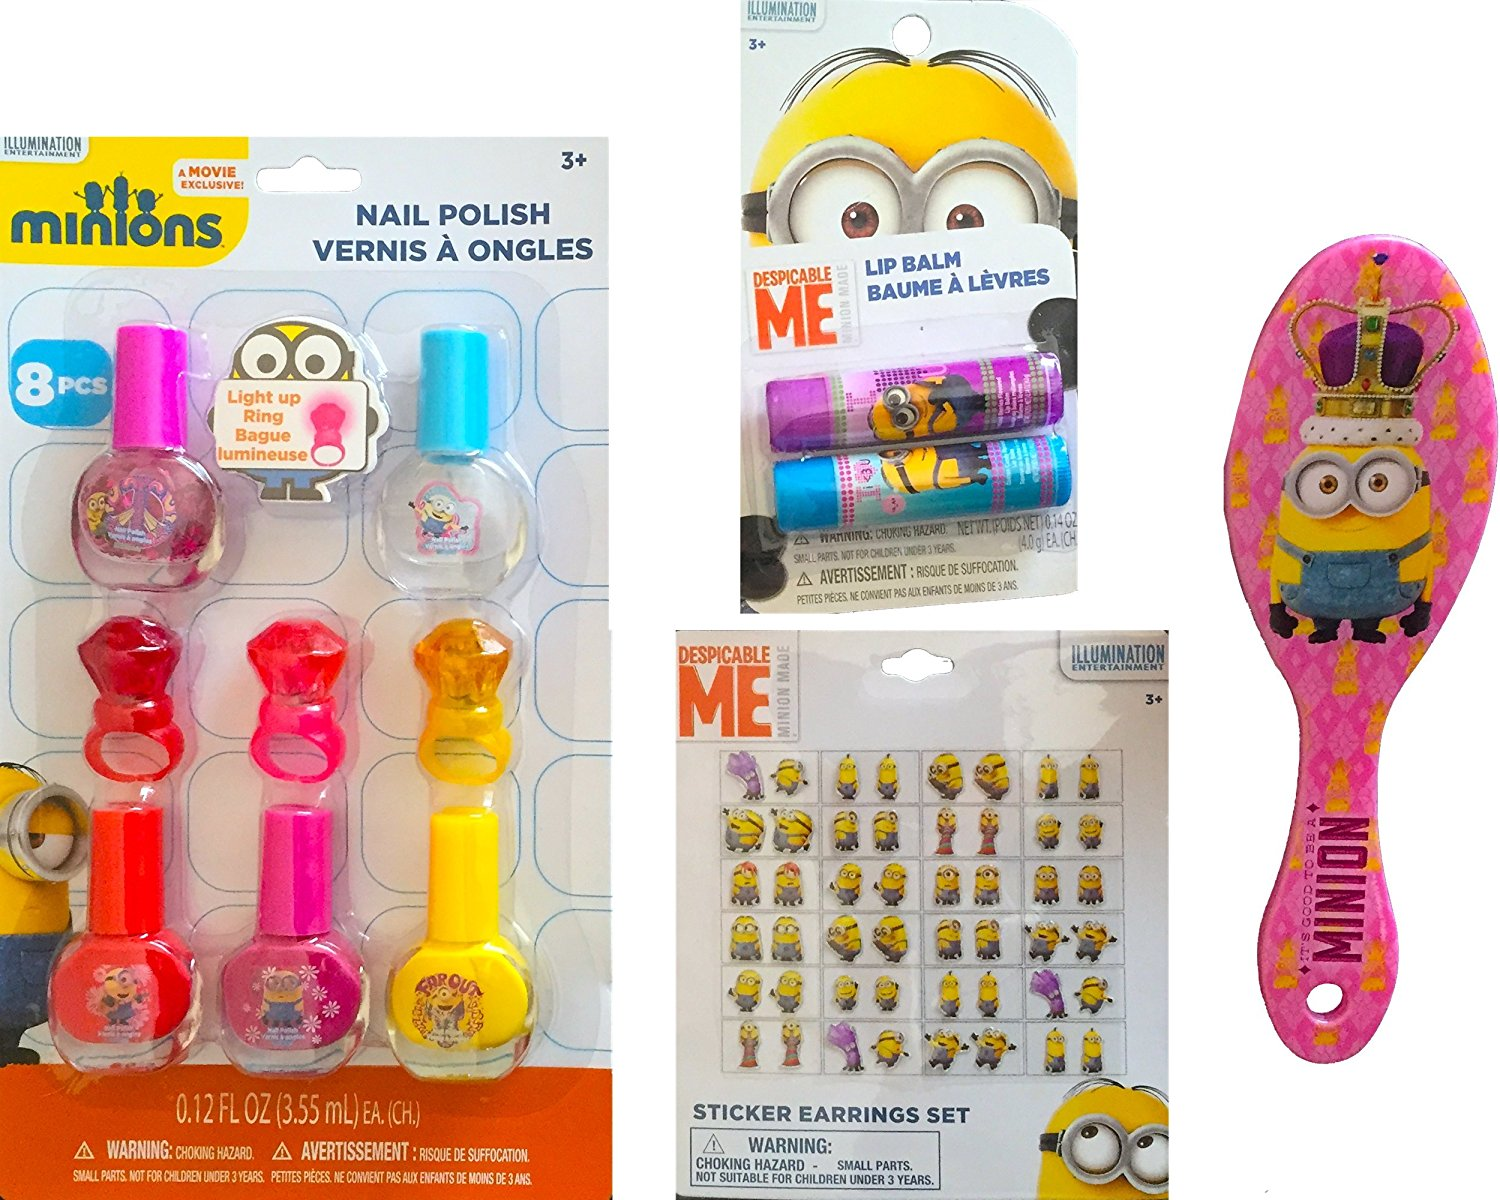 Minions Movie Exclusive Cosmetic Children's Pretend Play Gift Set Includes Minions Nail Polish with Light up Ring, Minions Sticker Earrings Set , Minions Lip Balm, and Minions Pink Comb